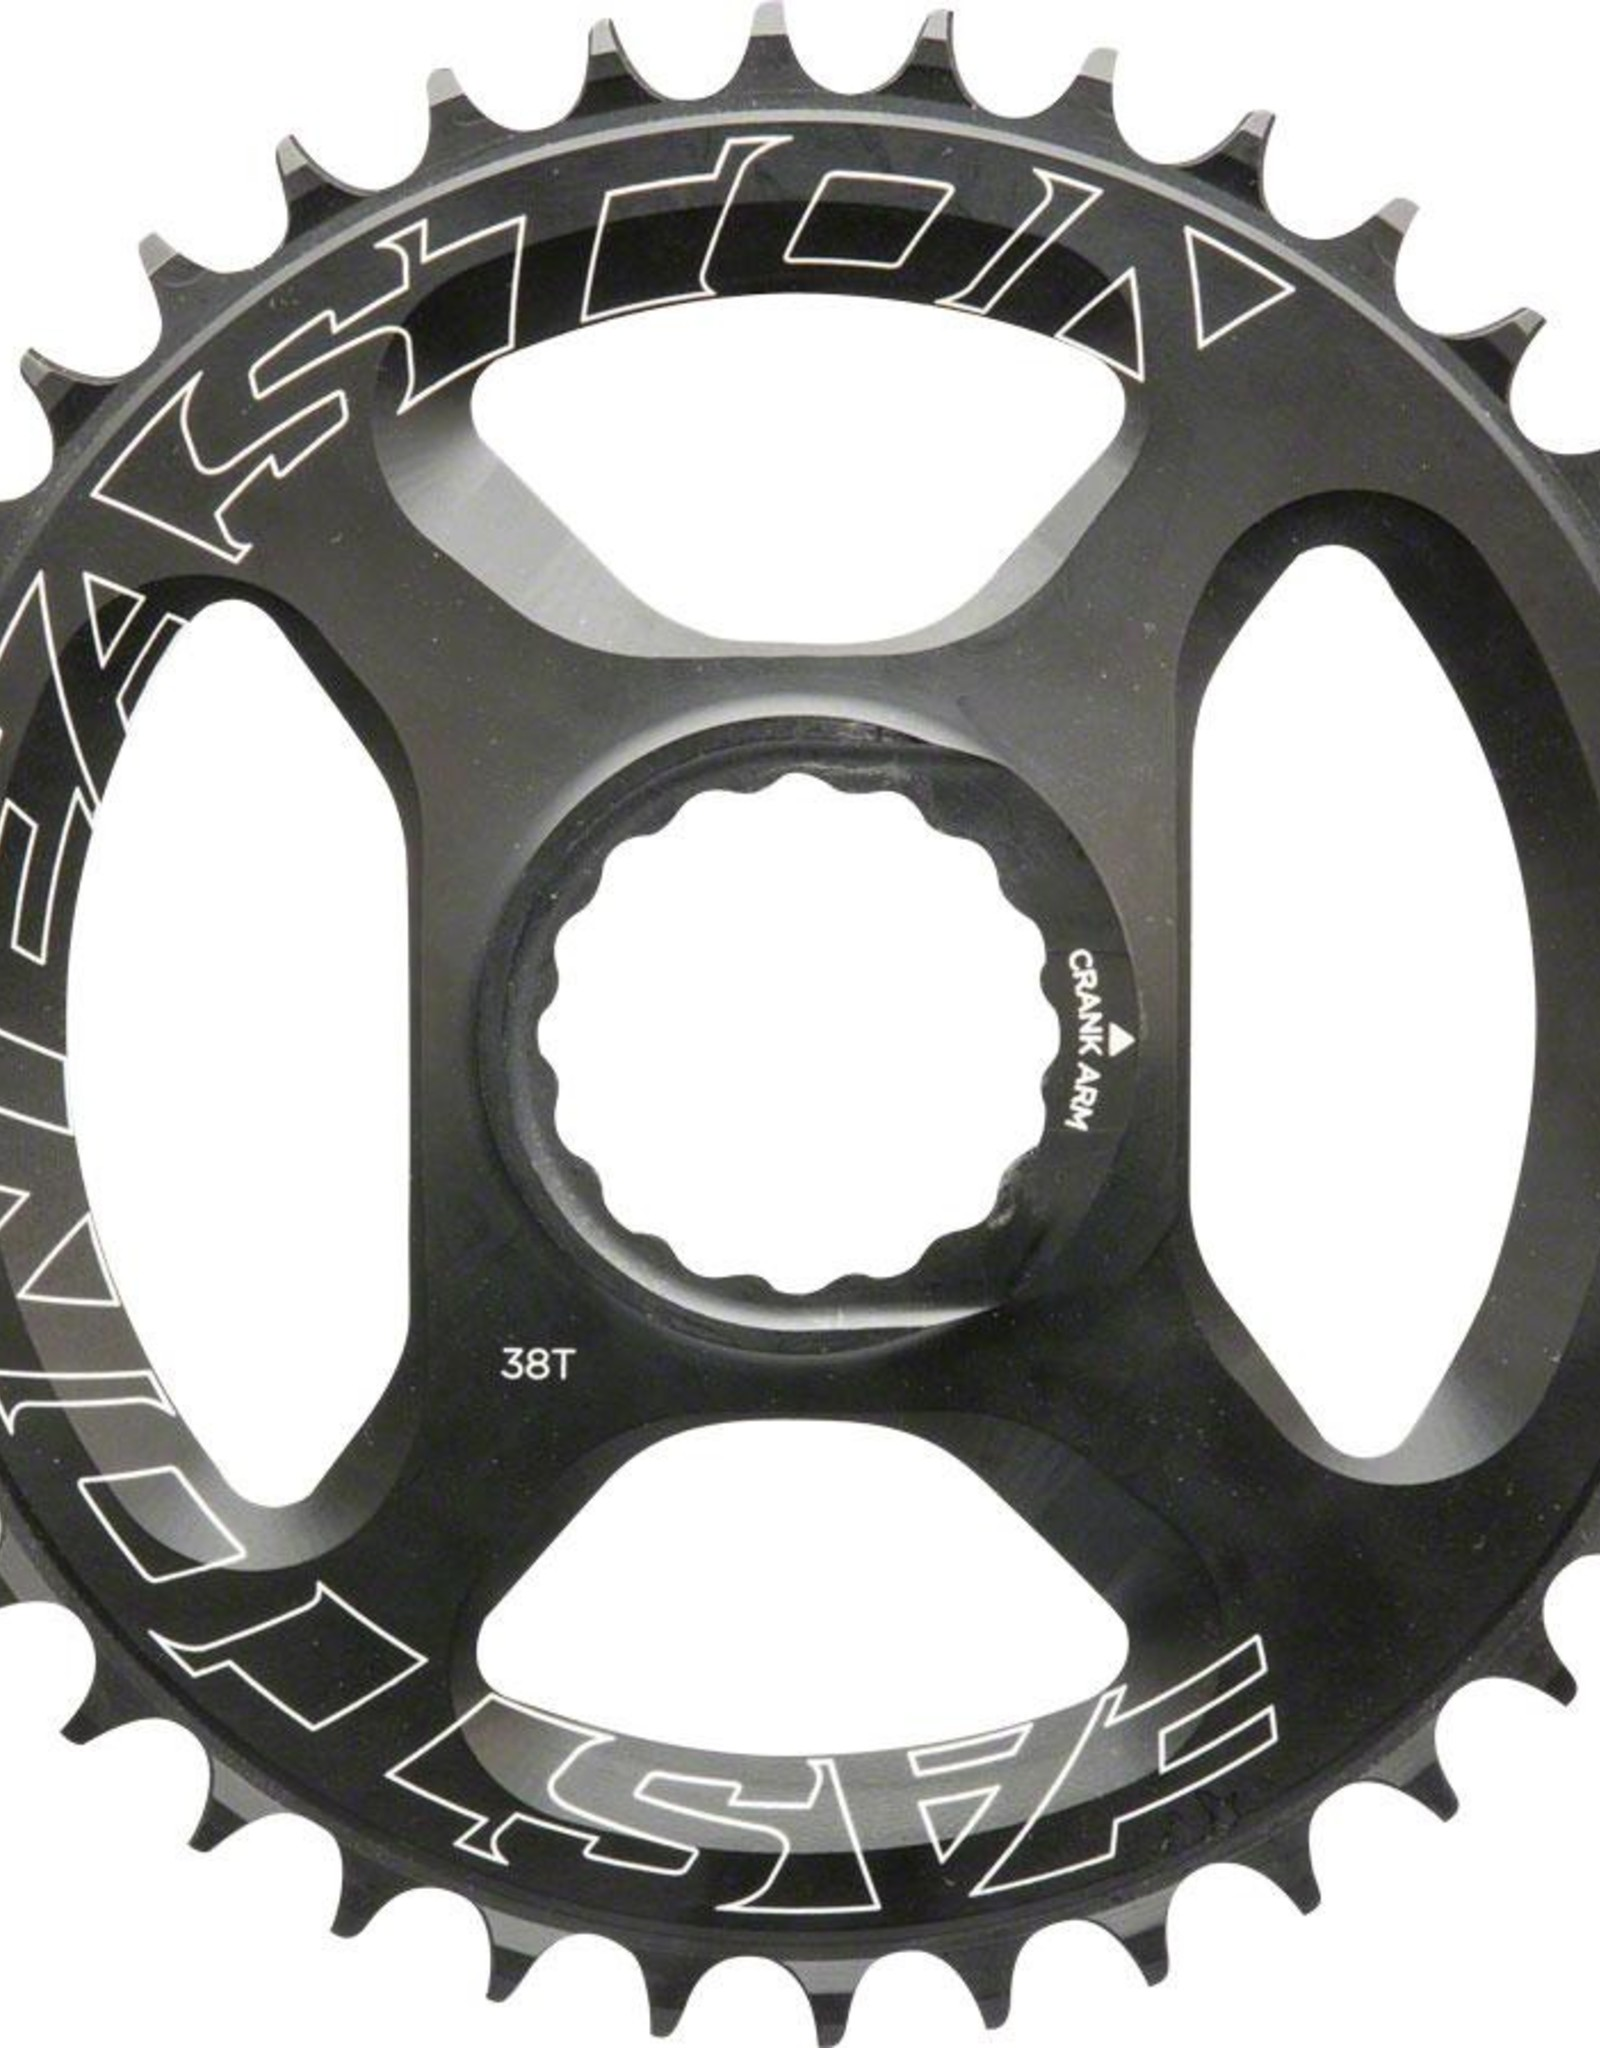 Easton - Direct Mount Chain Ring - 38T